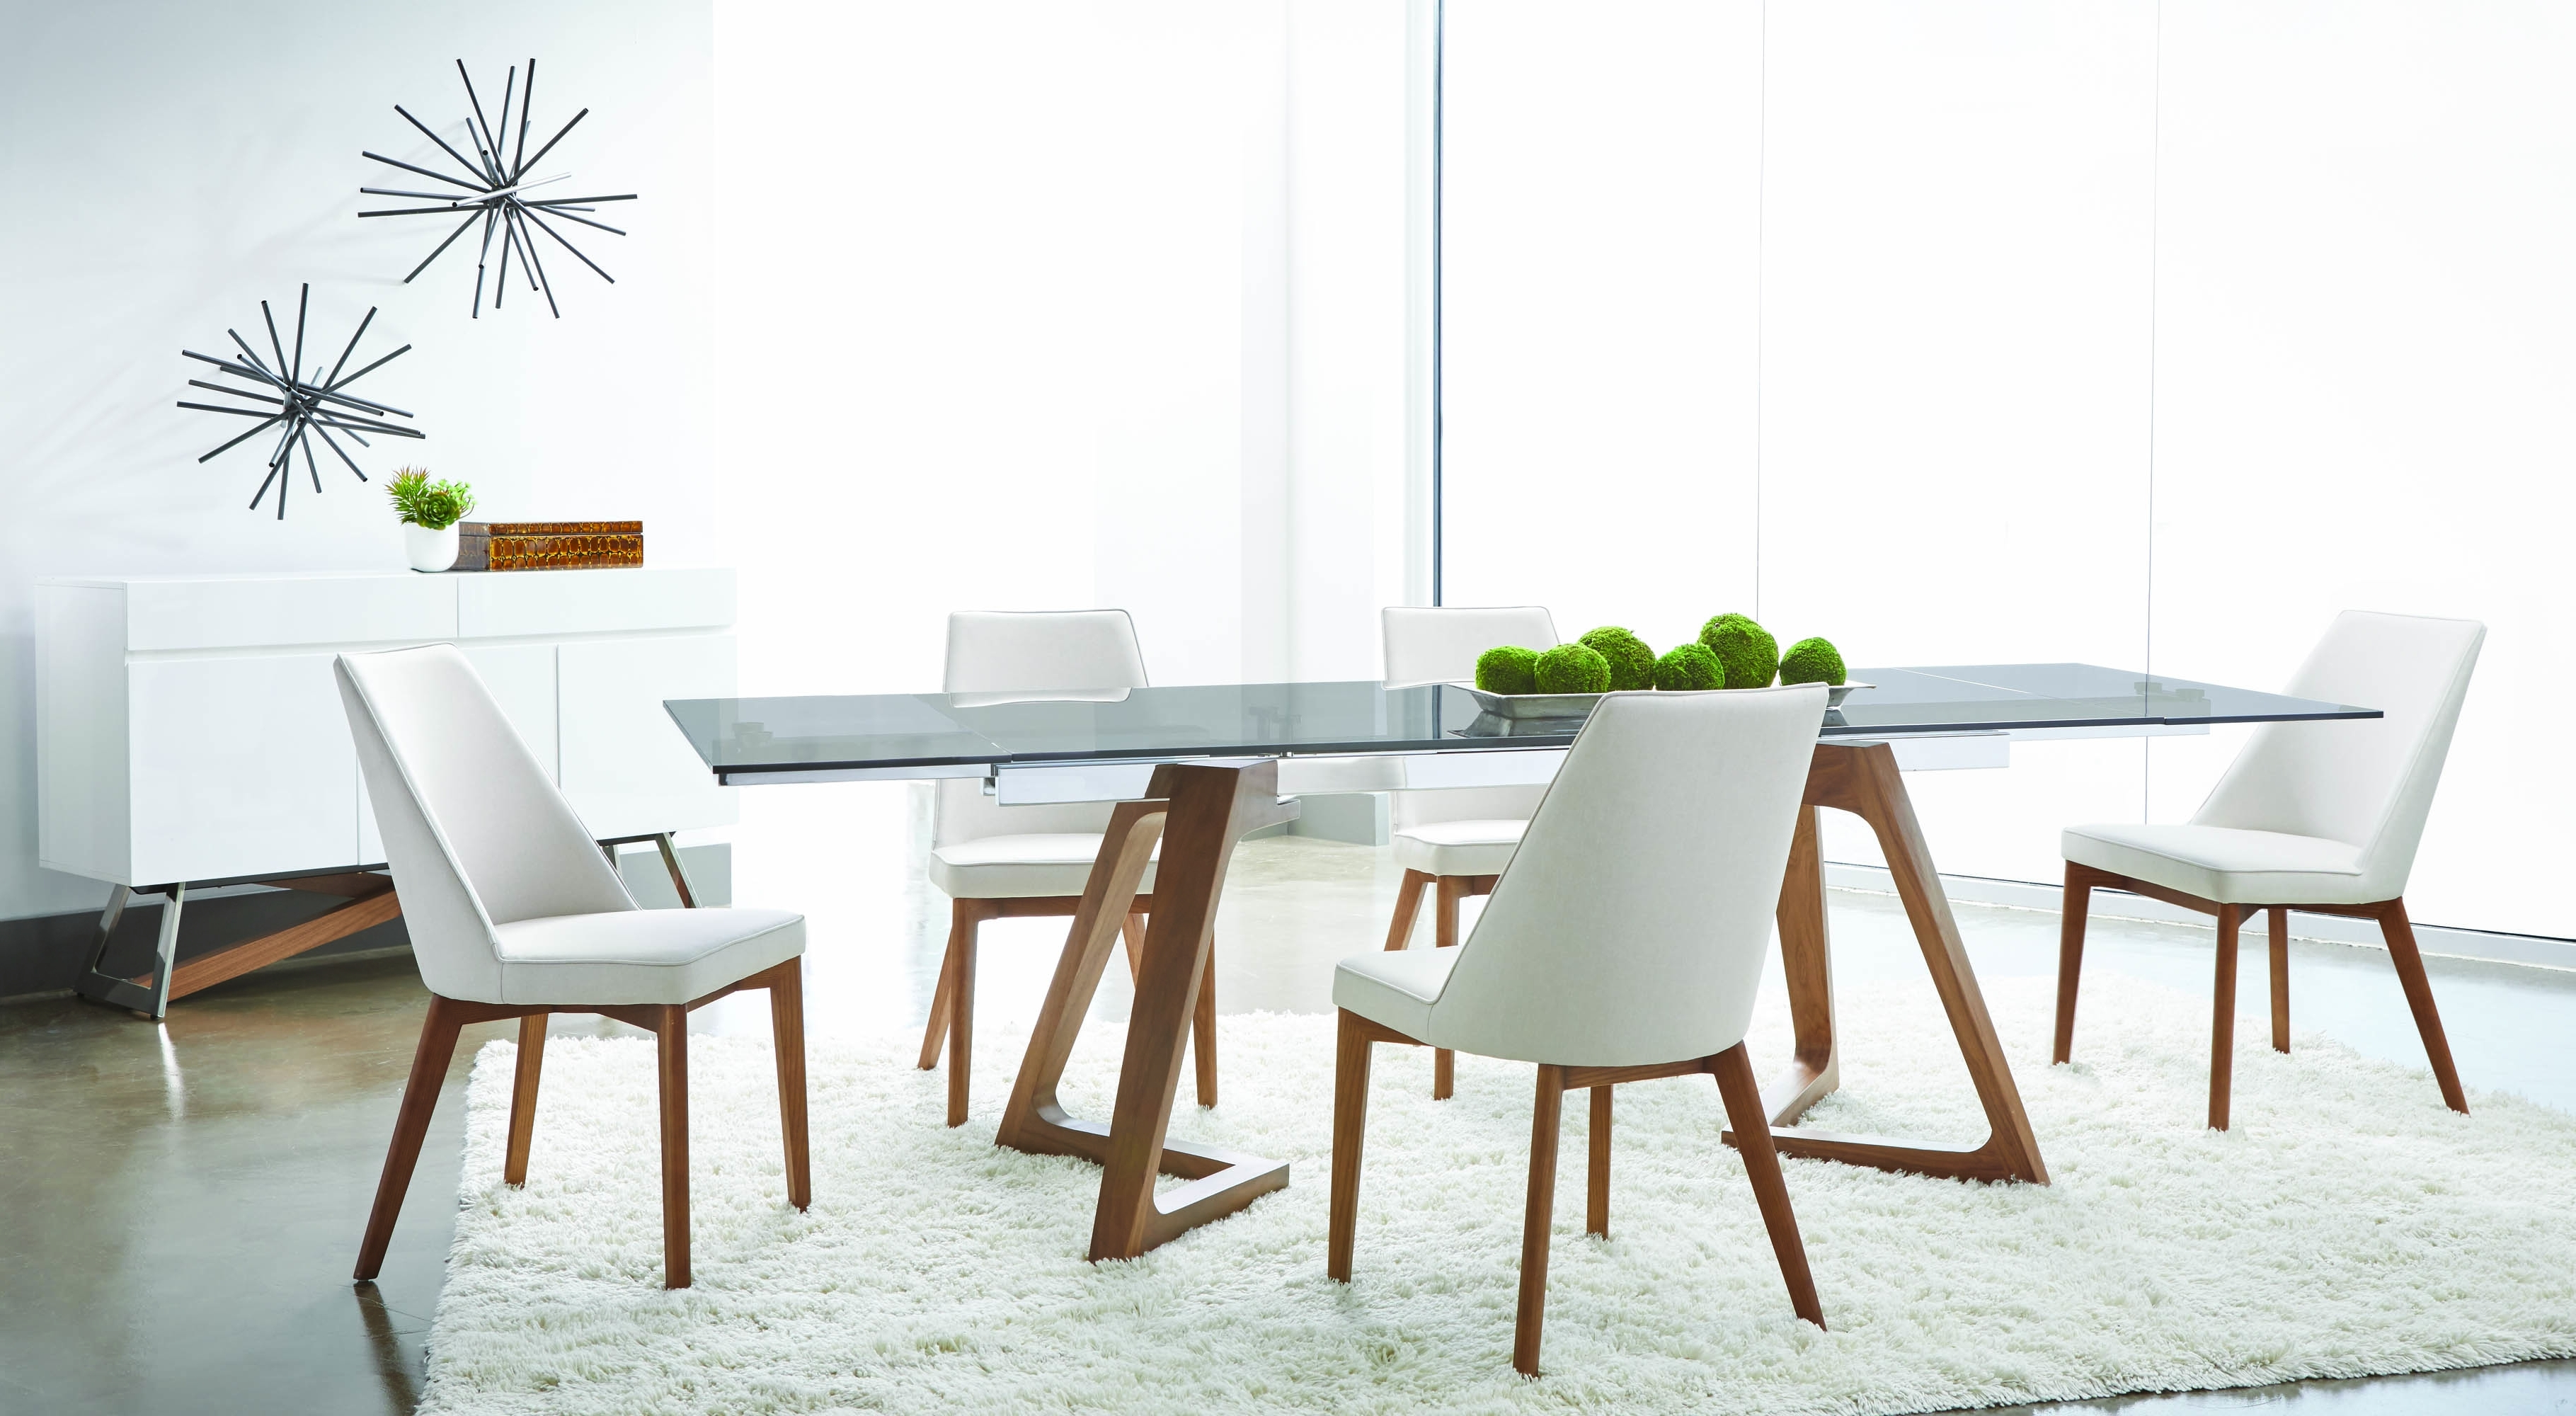 Most Recently Released Noah Dining Chair Regarding Noah Dining Tables (View 9 of 25)